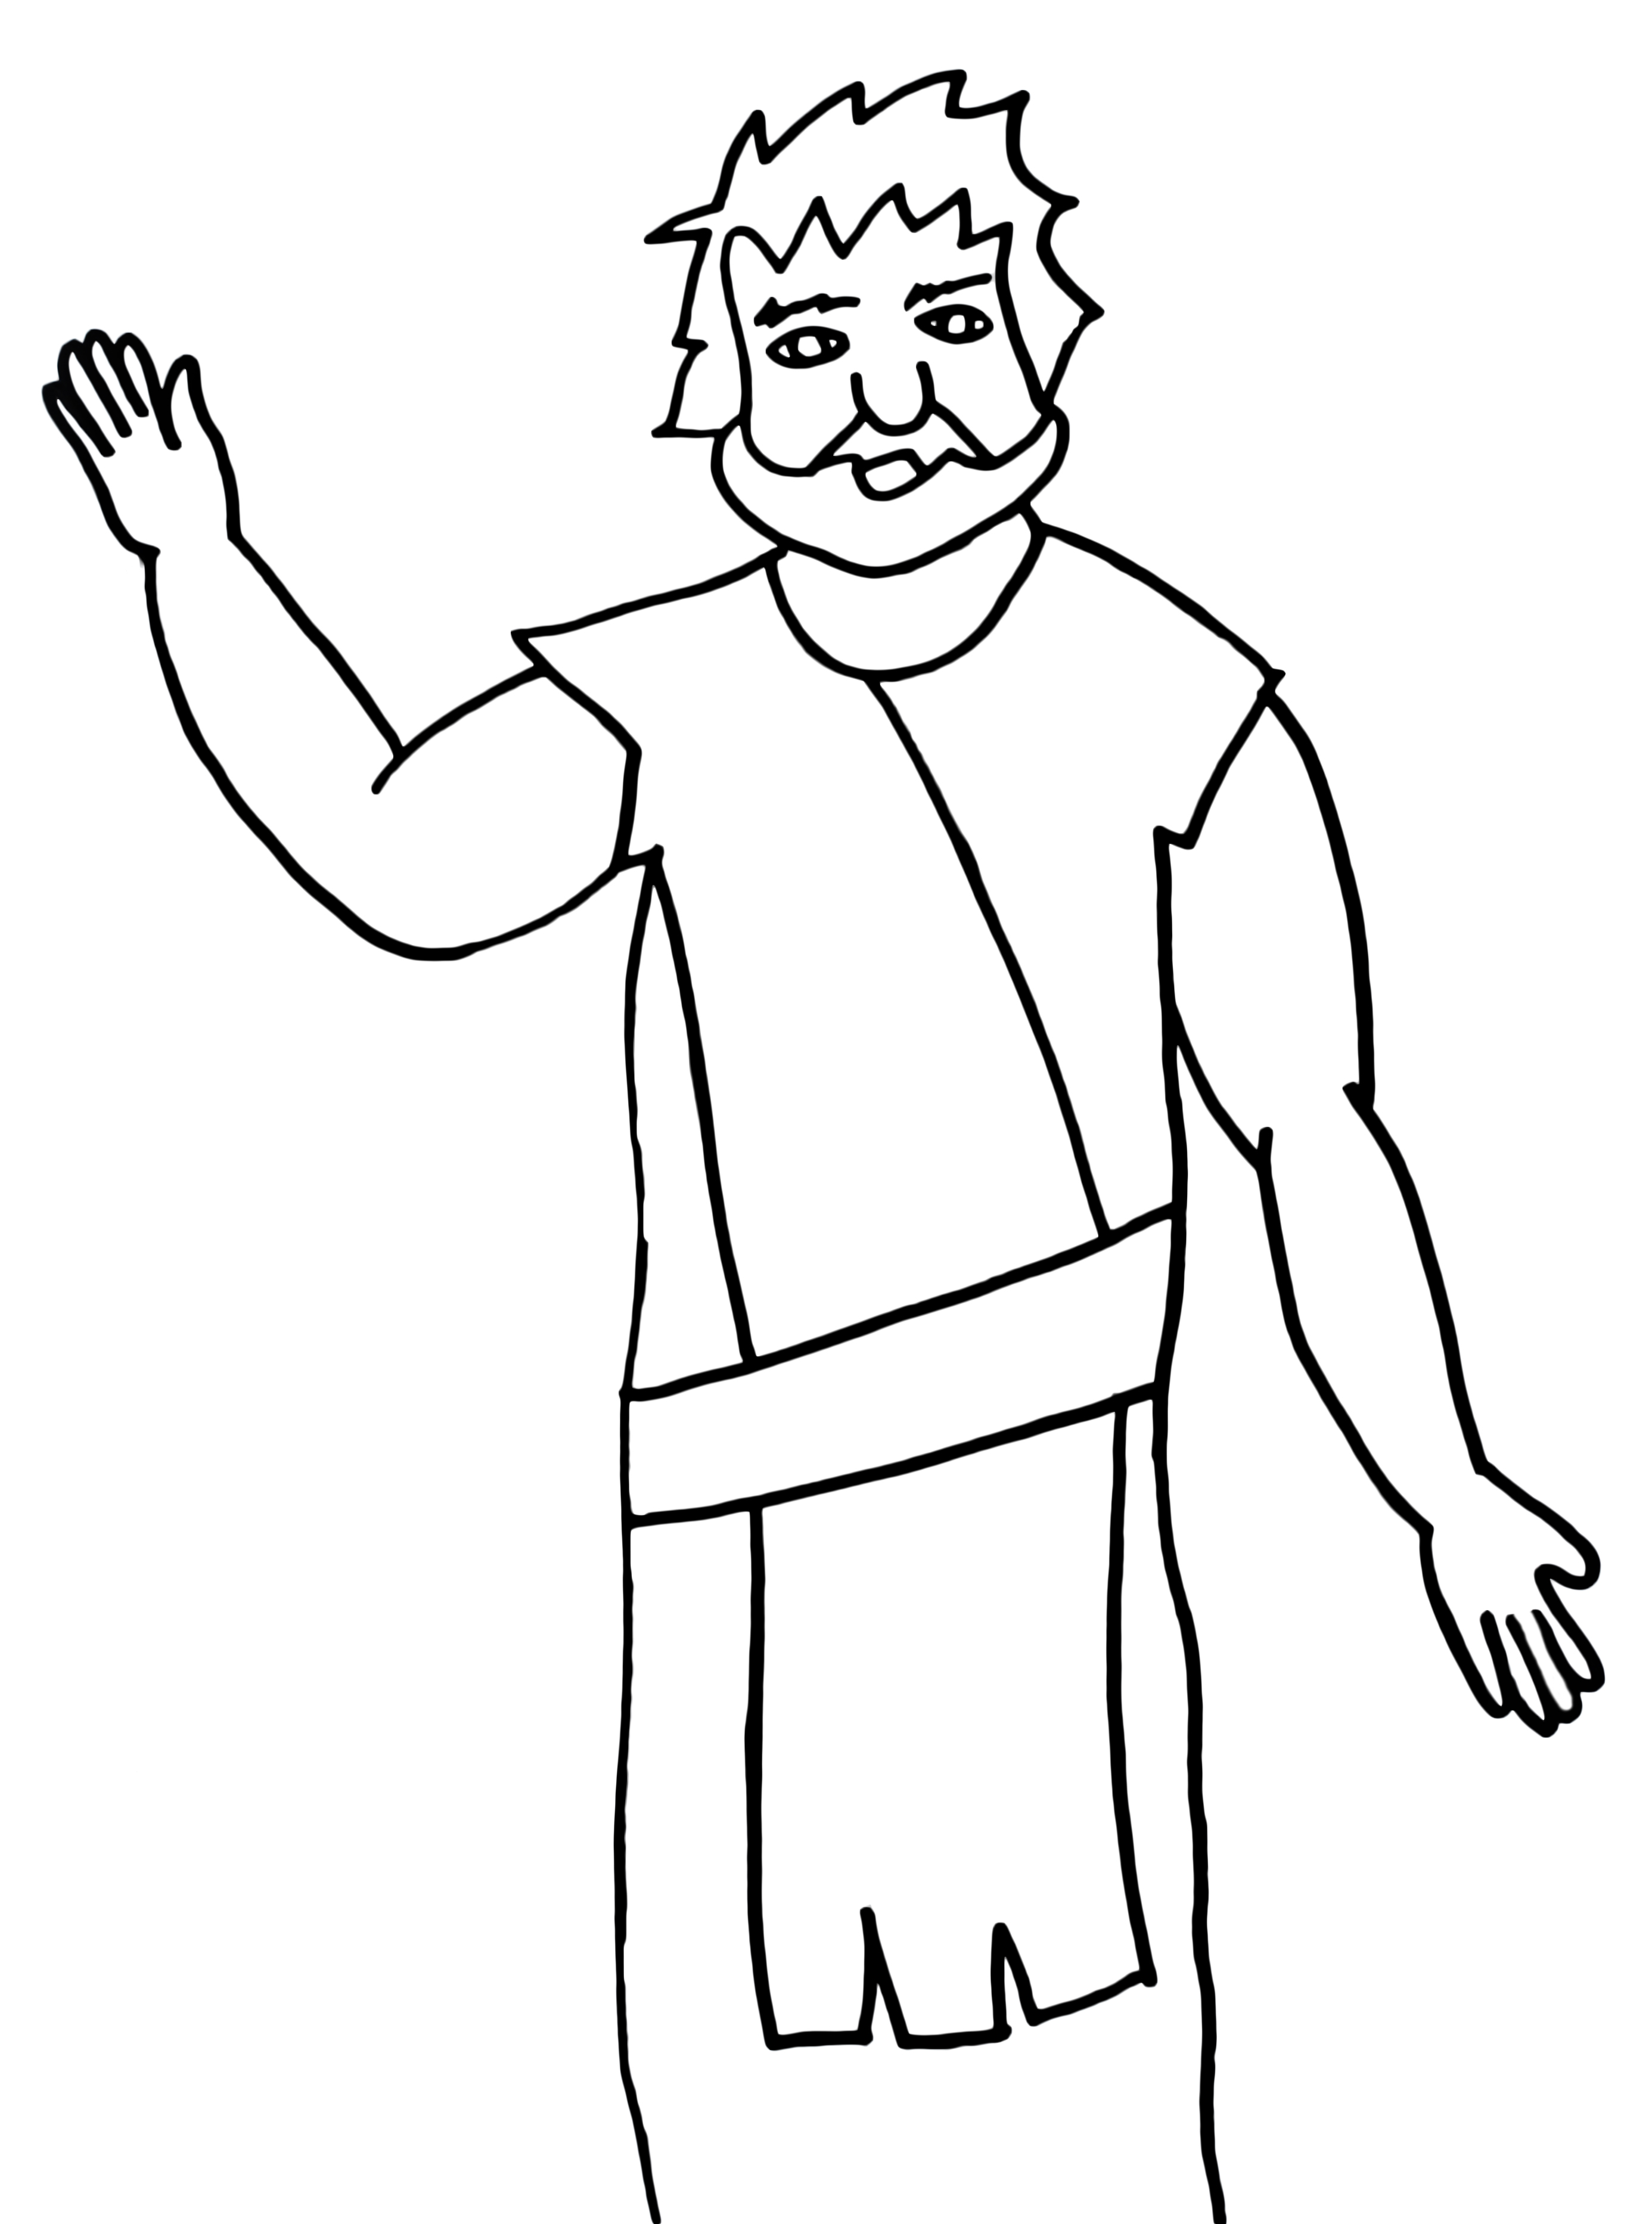 simple jesus drawing at getdrawings com free for personal use rh getdrawings com  lds clipart baptism of jesus